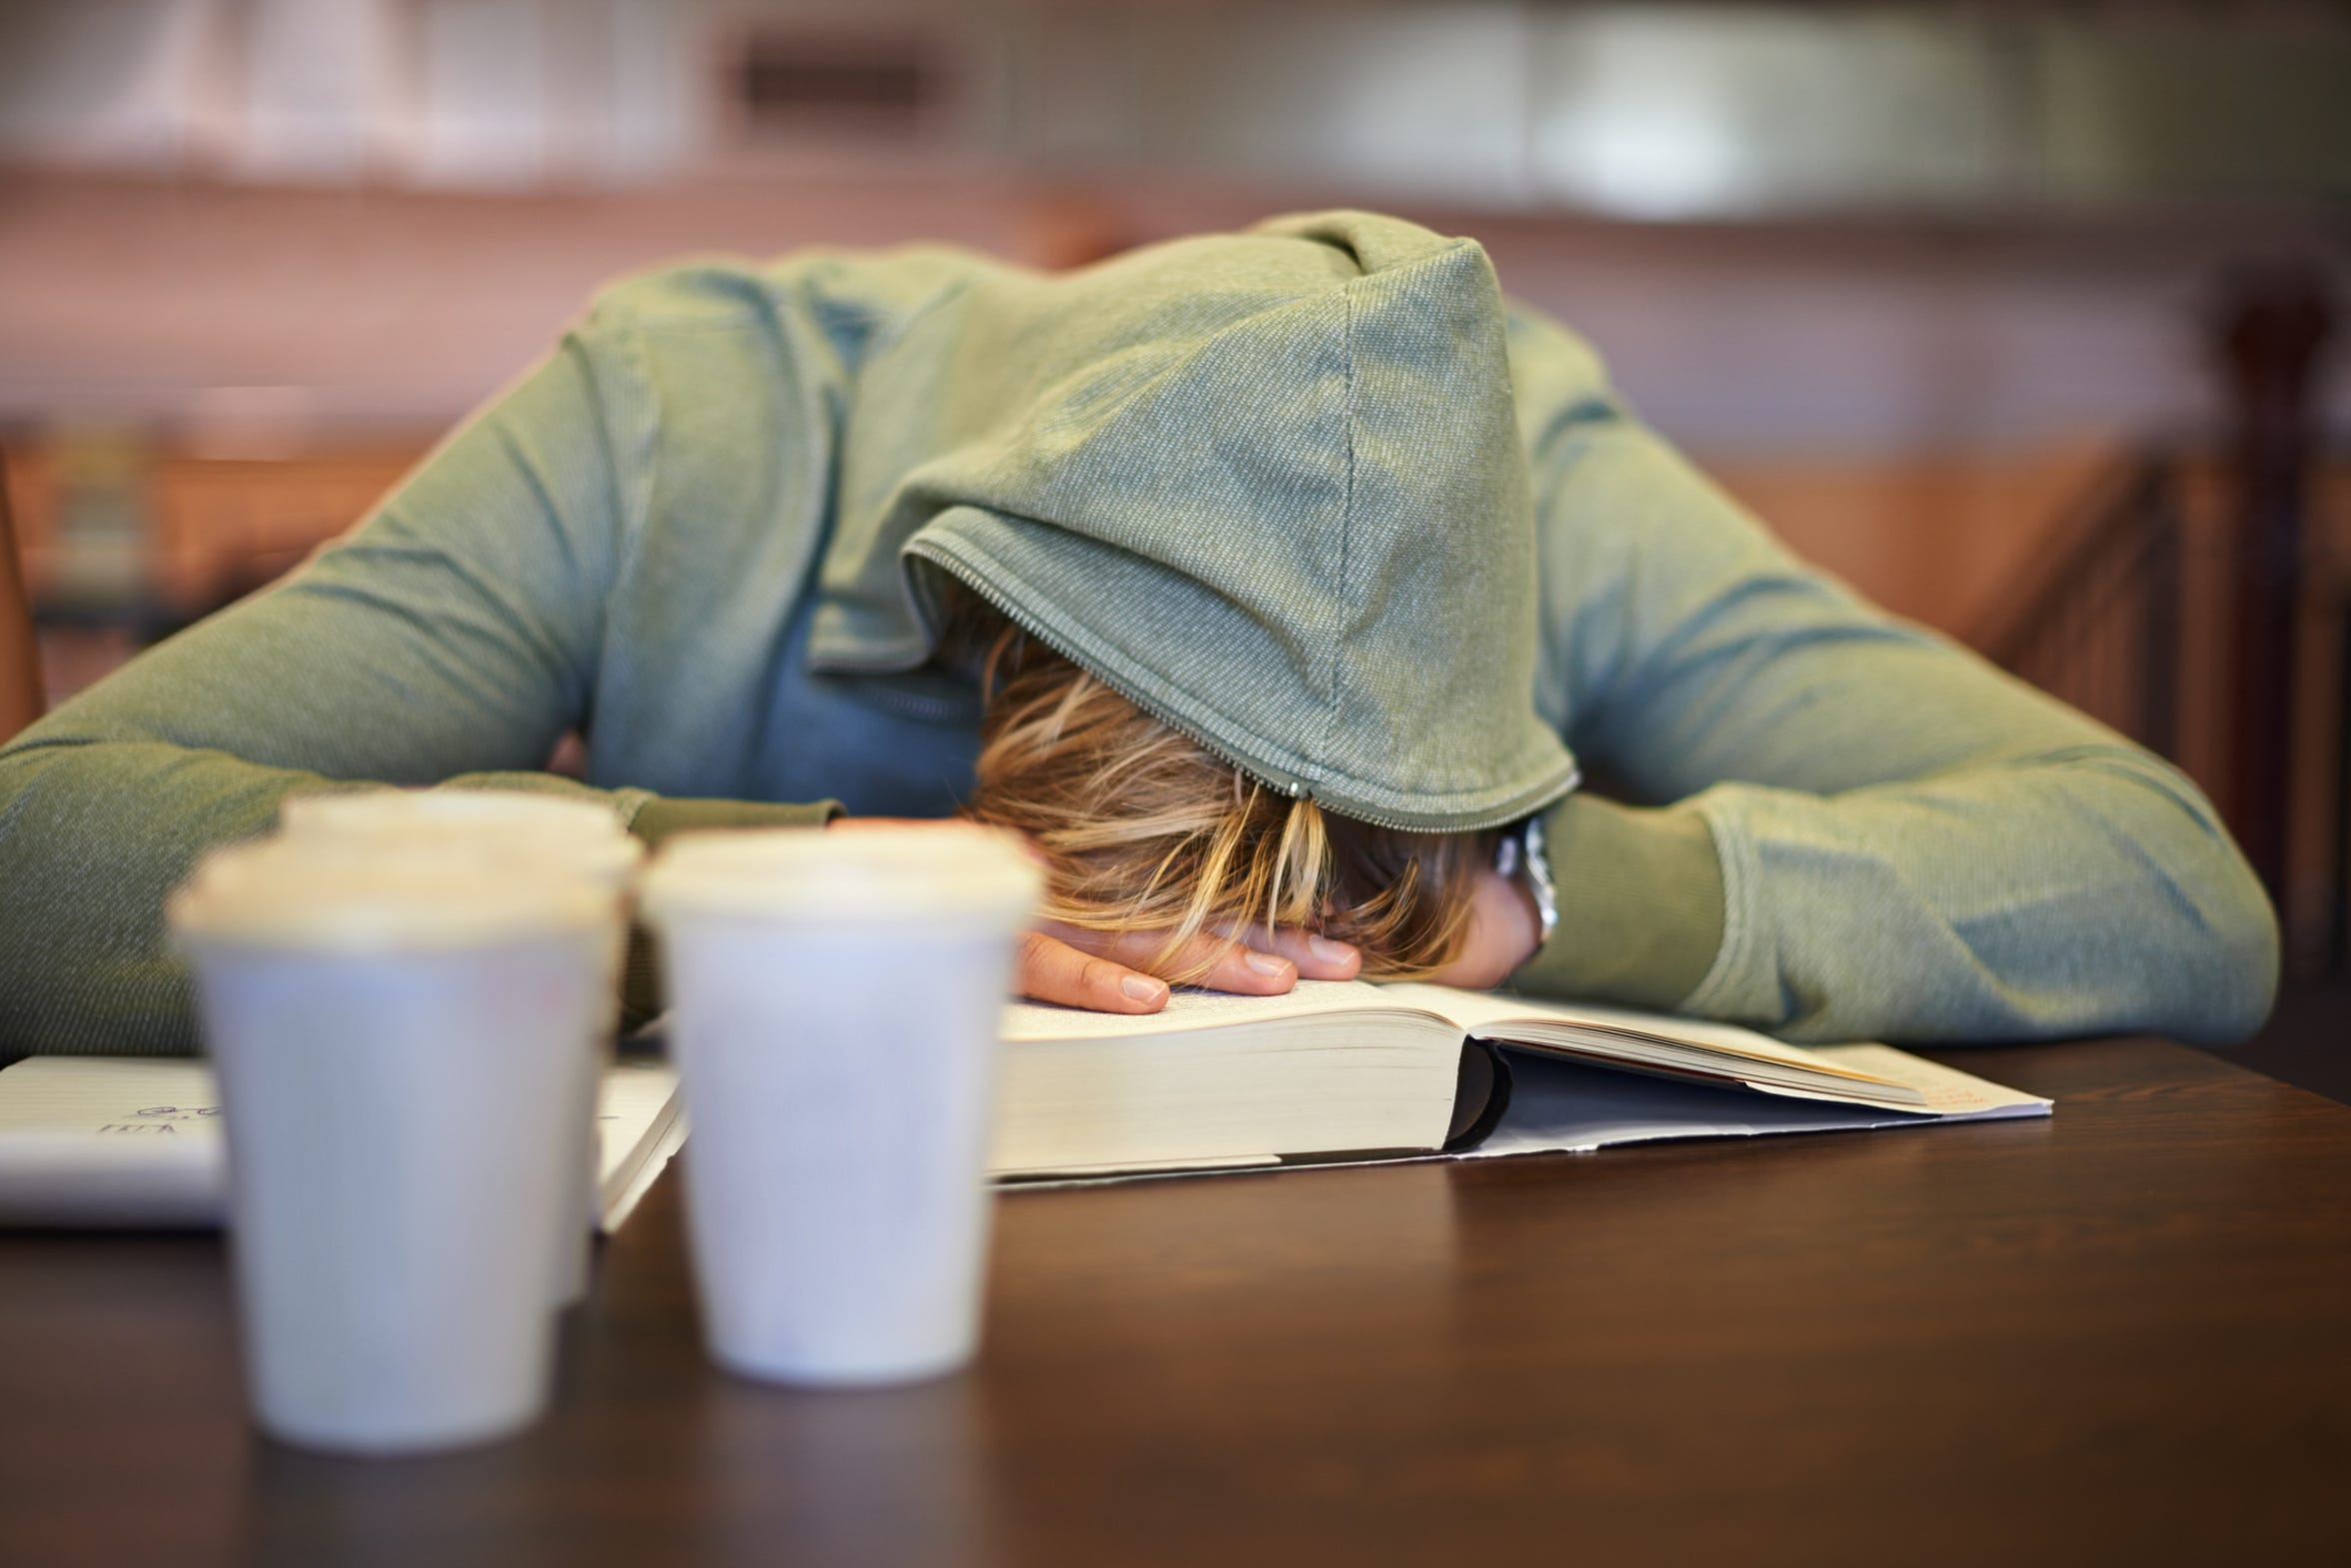 Sleep deprivation can affect a teenager's physical and mental health, academic performance and overall well-being.